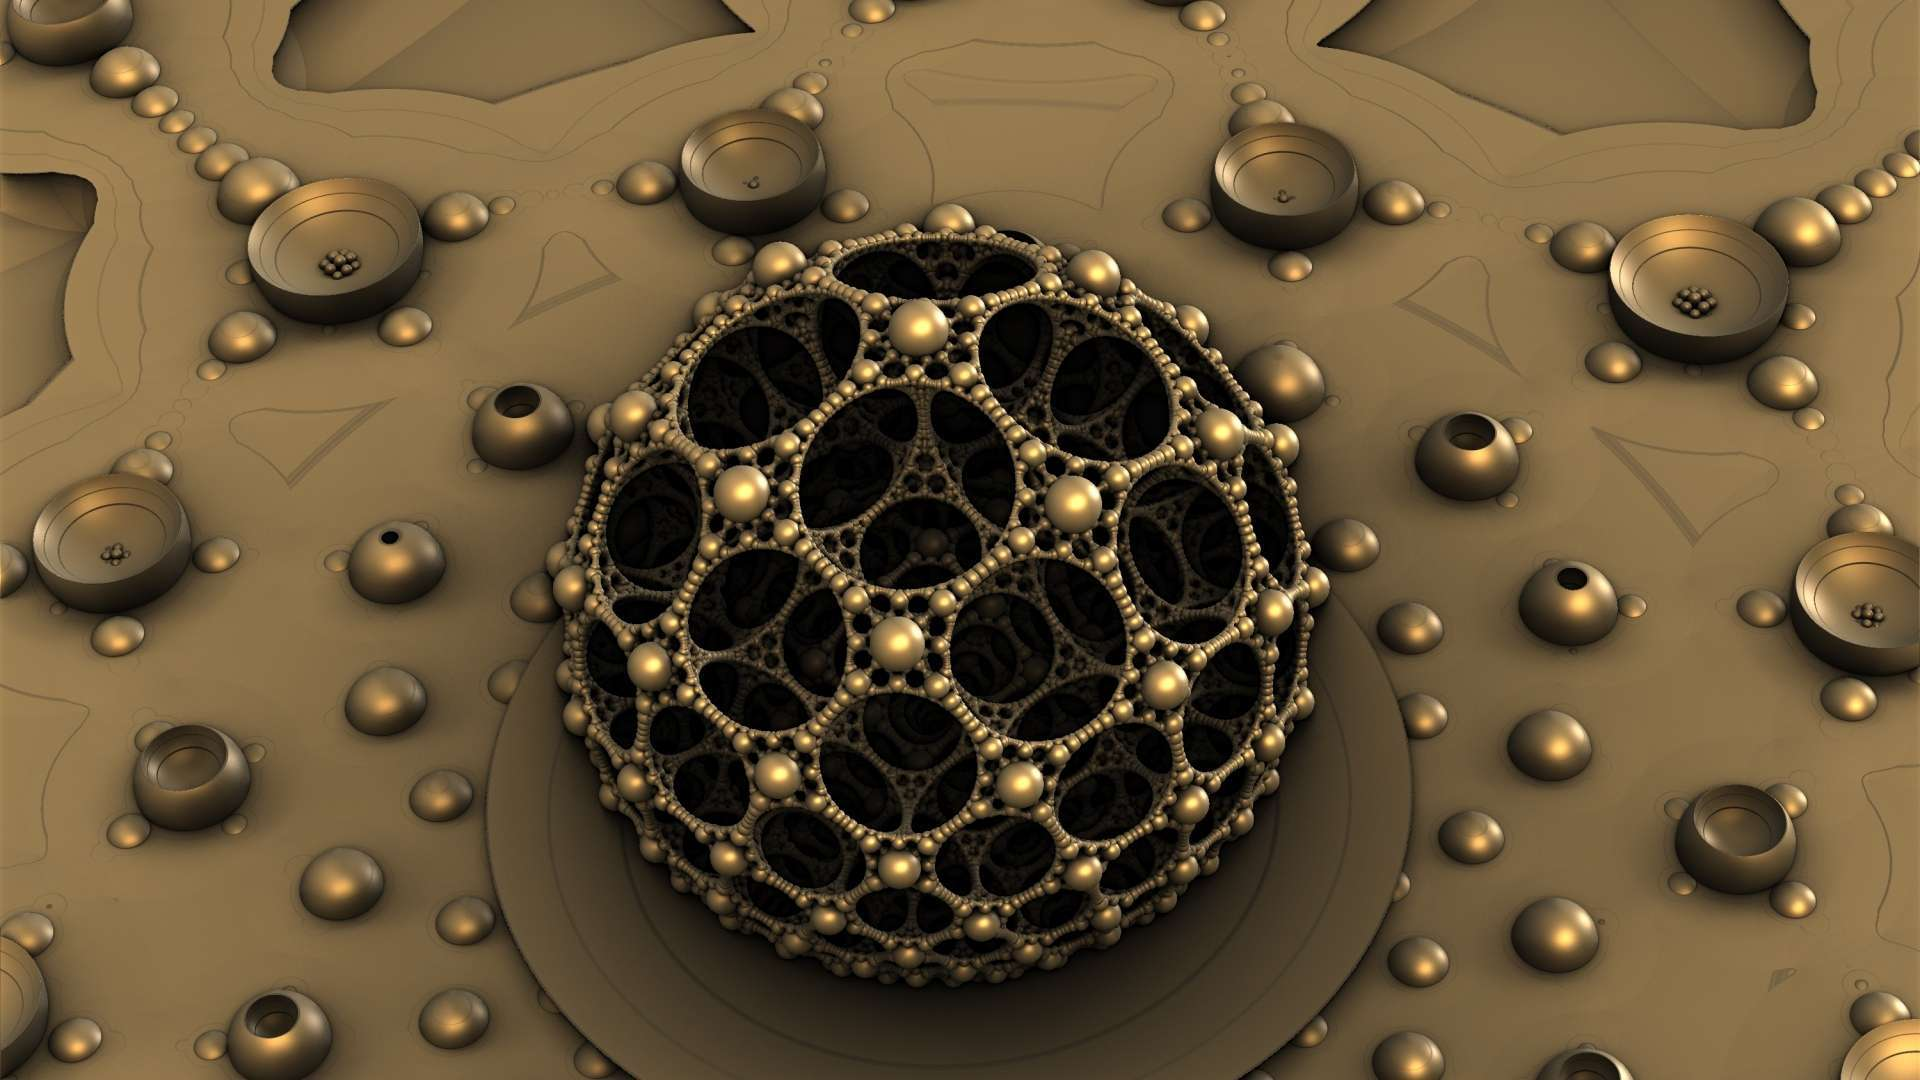 balls-fractal-shape-hd-1080p-1920%C3%971080-wallpaper-wp3802773